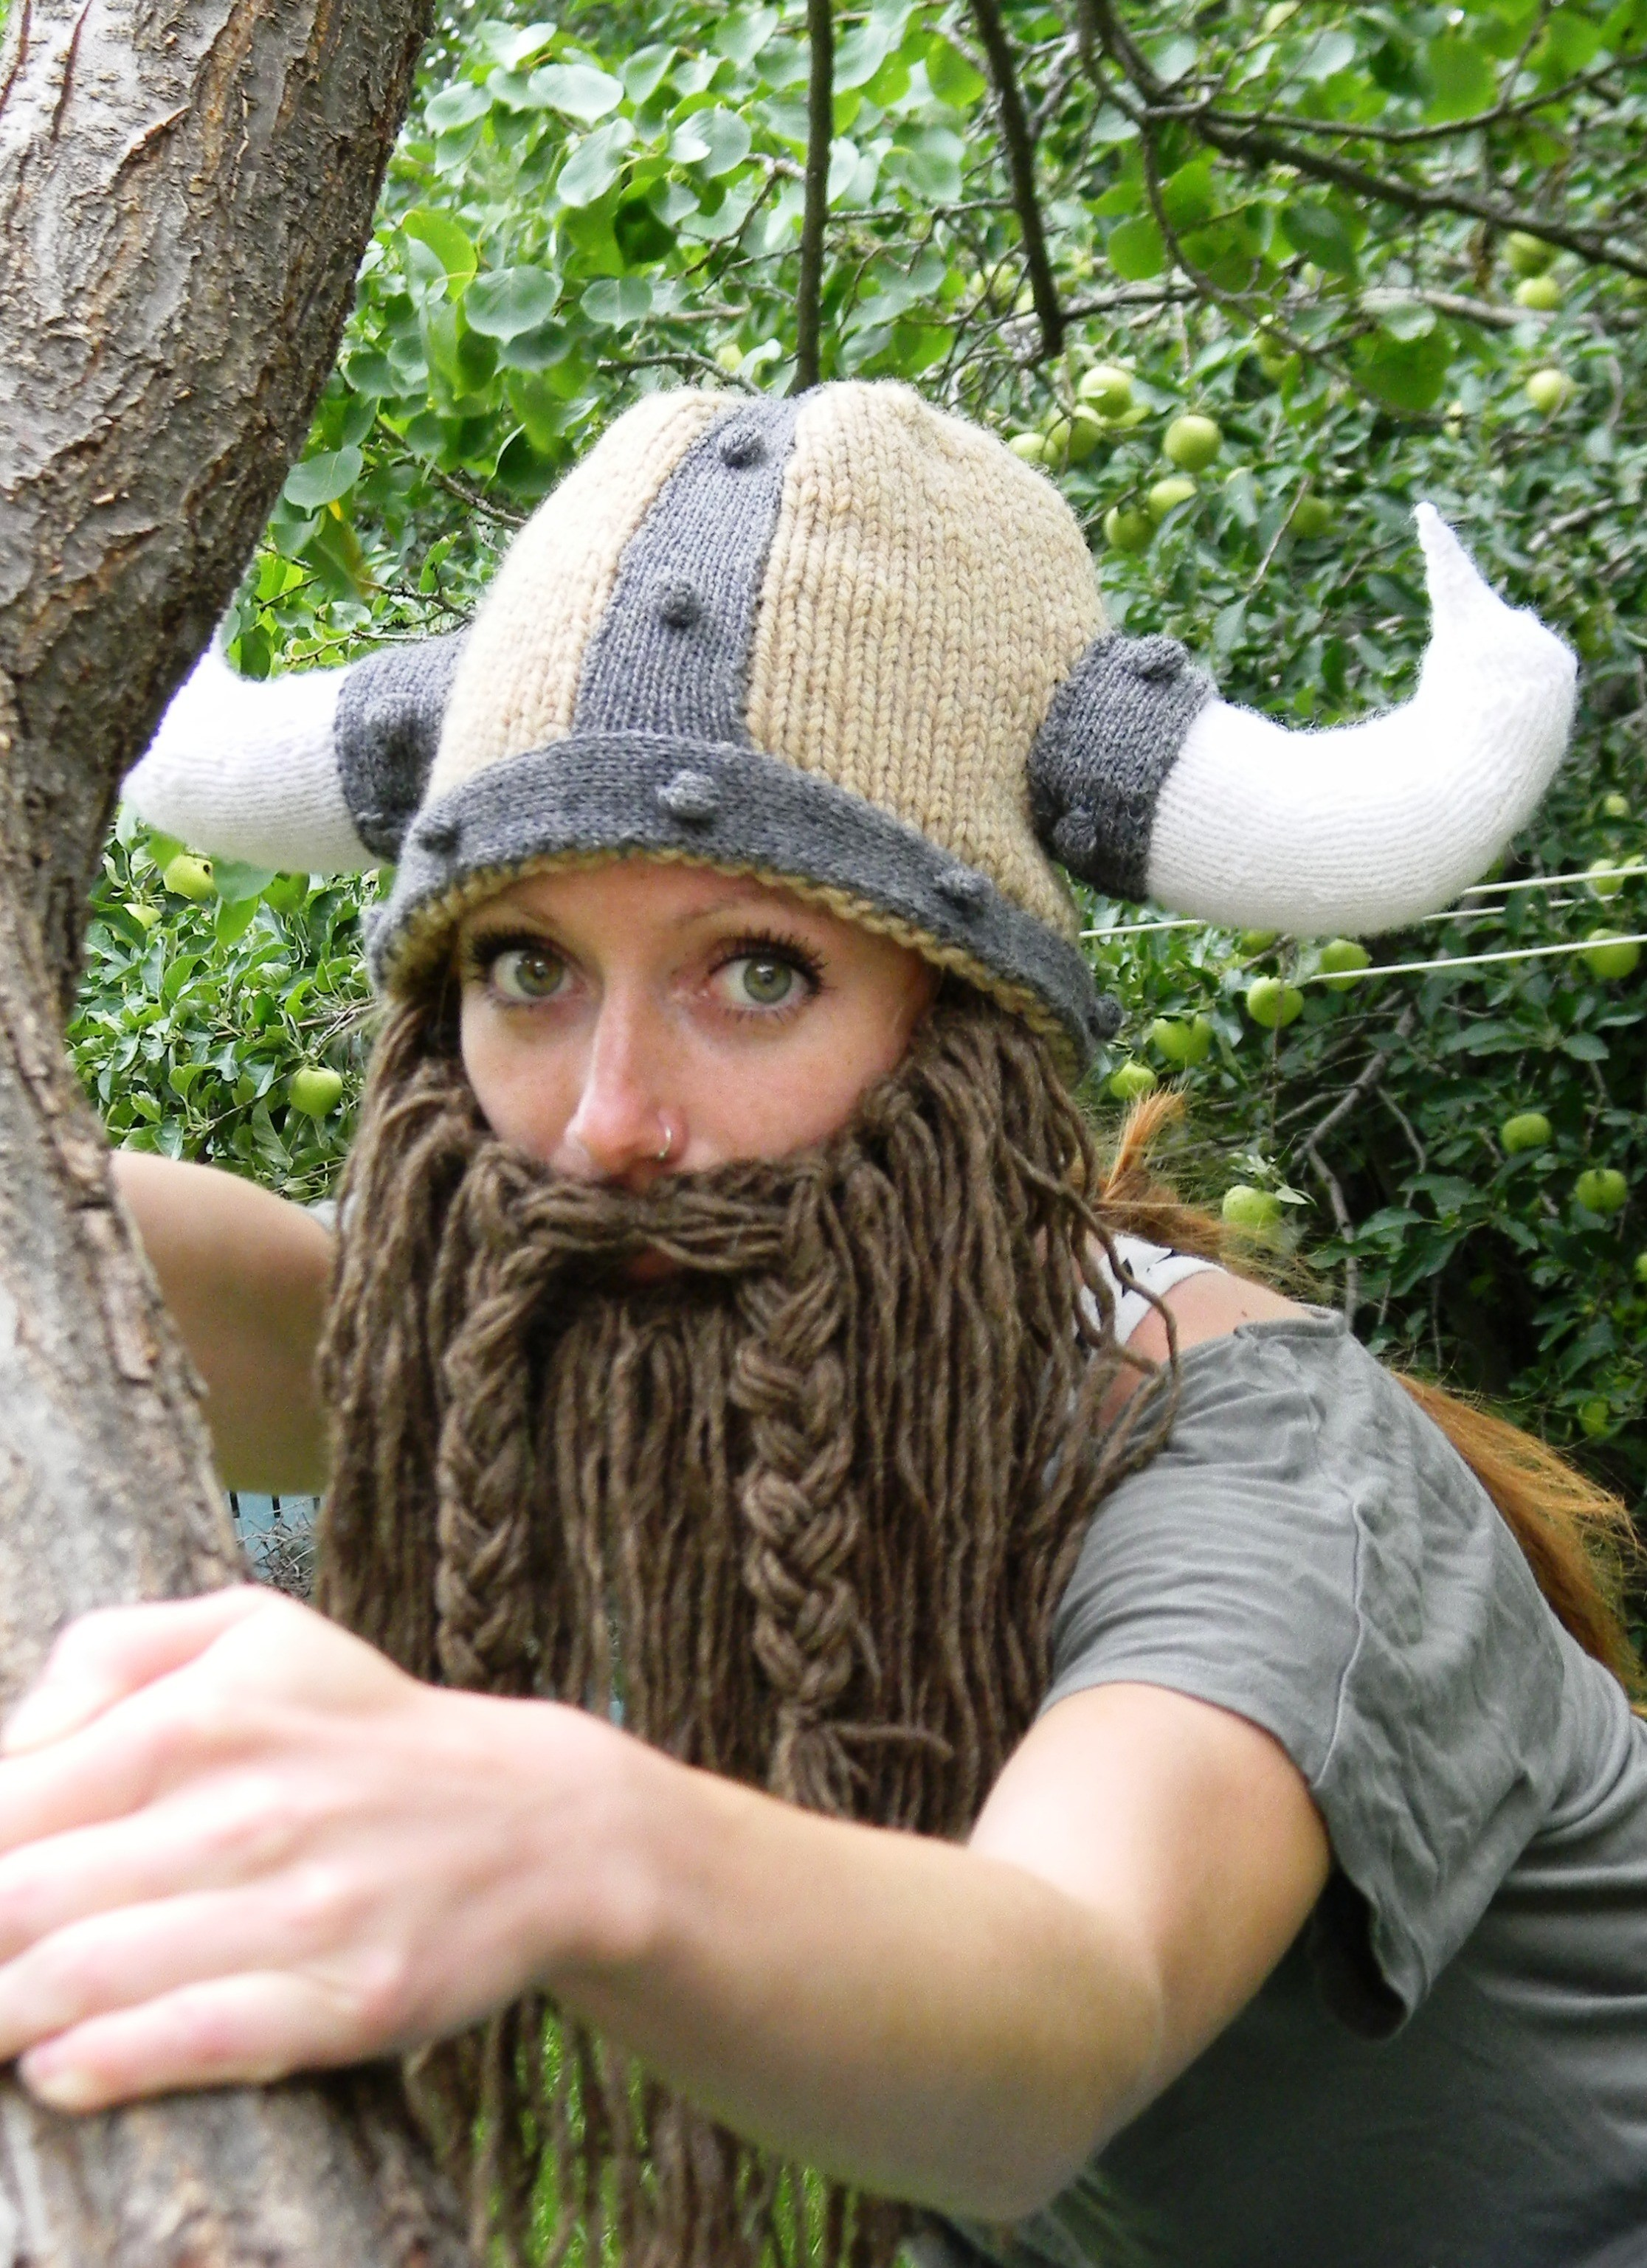 Viking Knitting Patterns : Viking Knit Hat Patterns A Knitting Blog